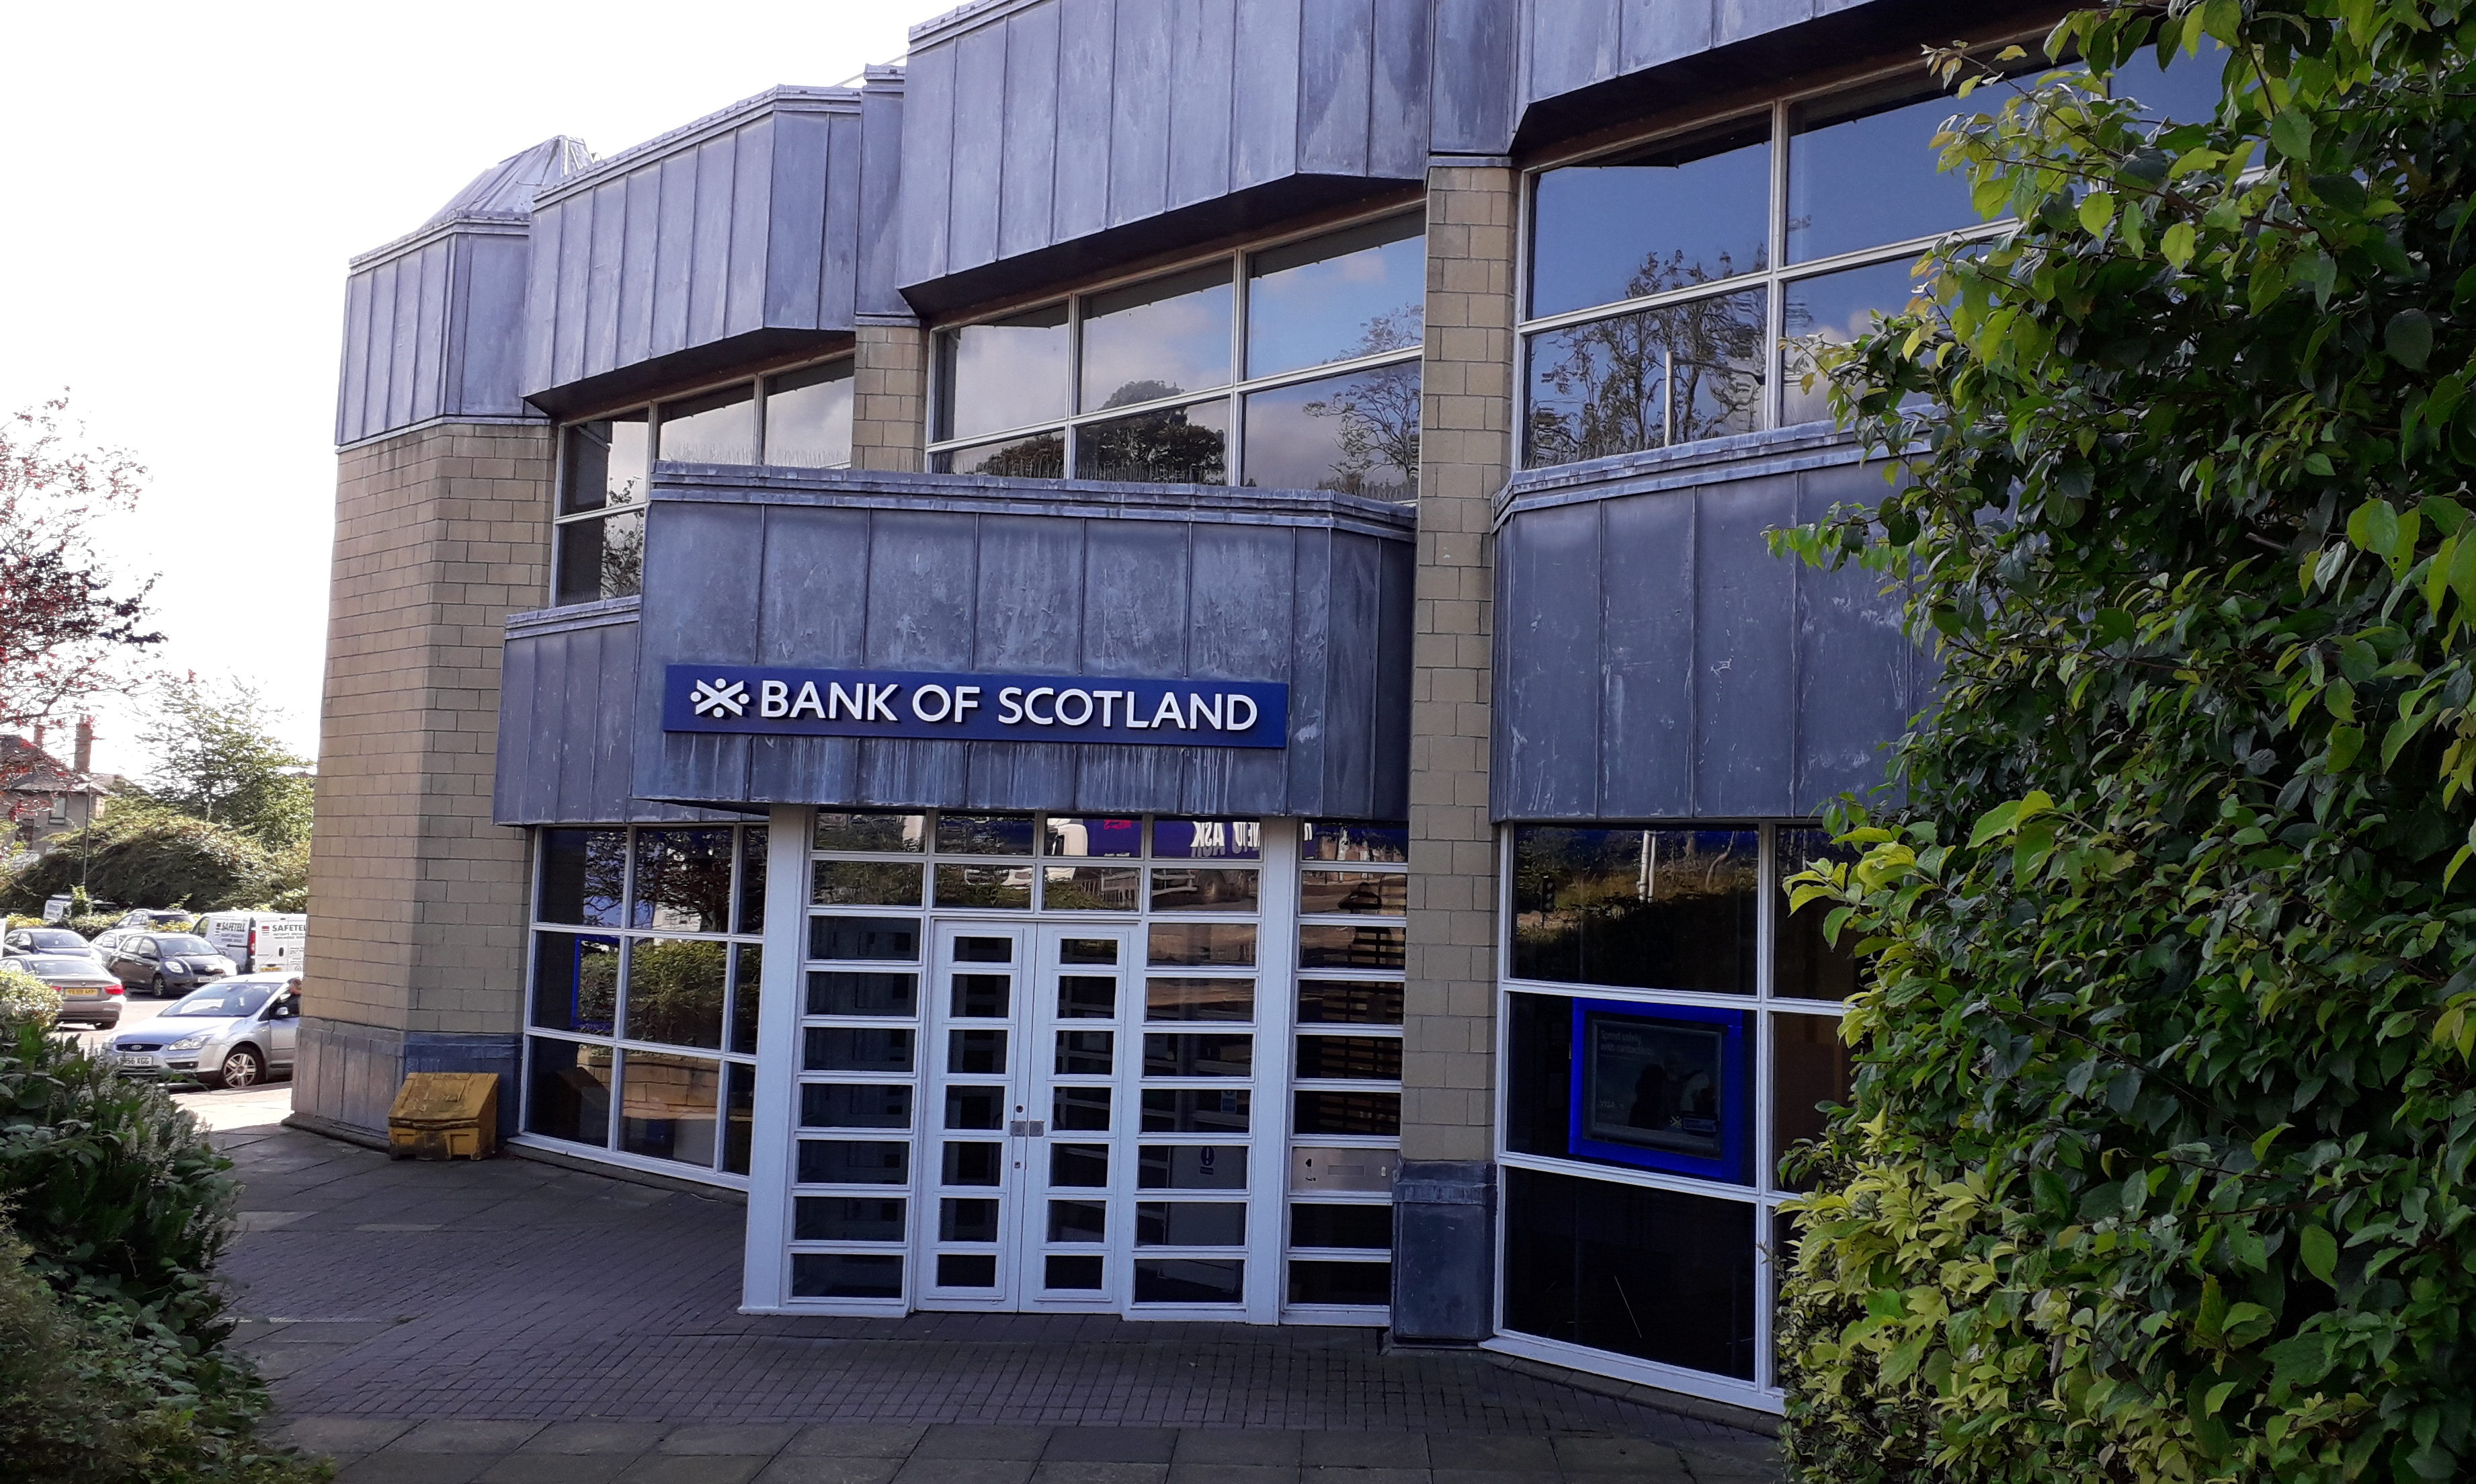 The branch of Bank of Scotland in Bothwell Street.